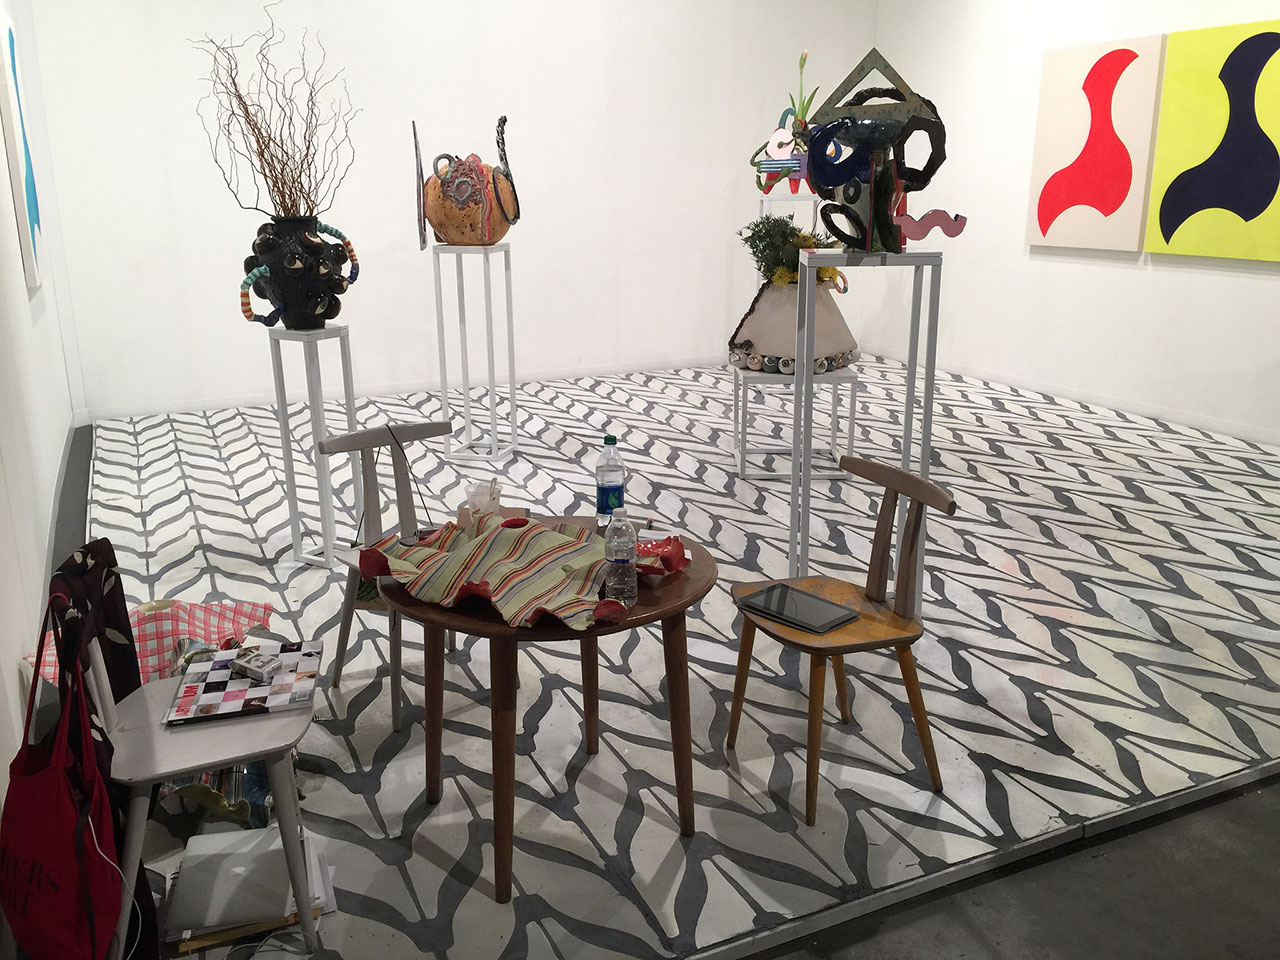 Travesia Cuatro gallery of Madrid and Guadalajara went the all-over approach